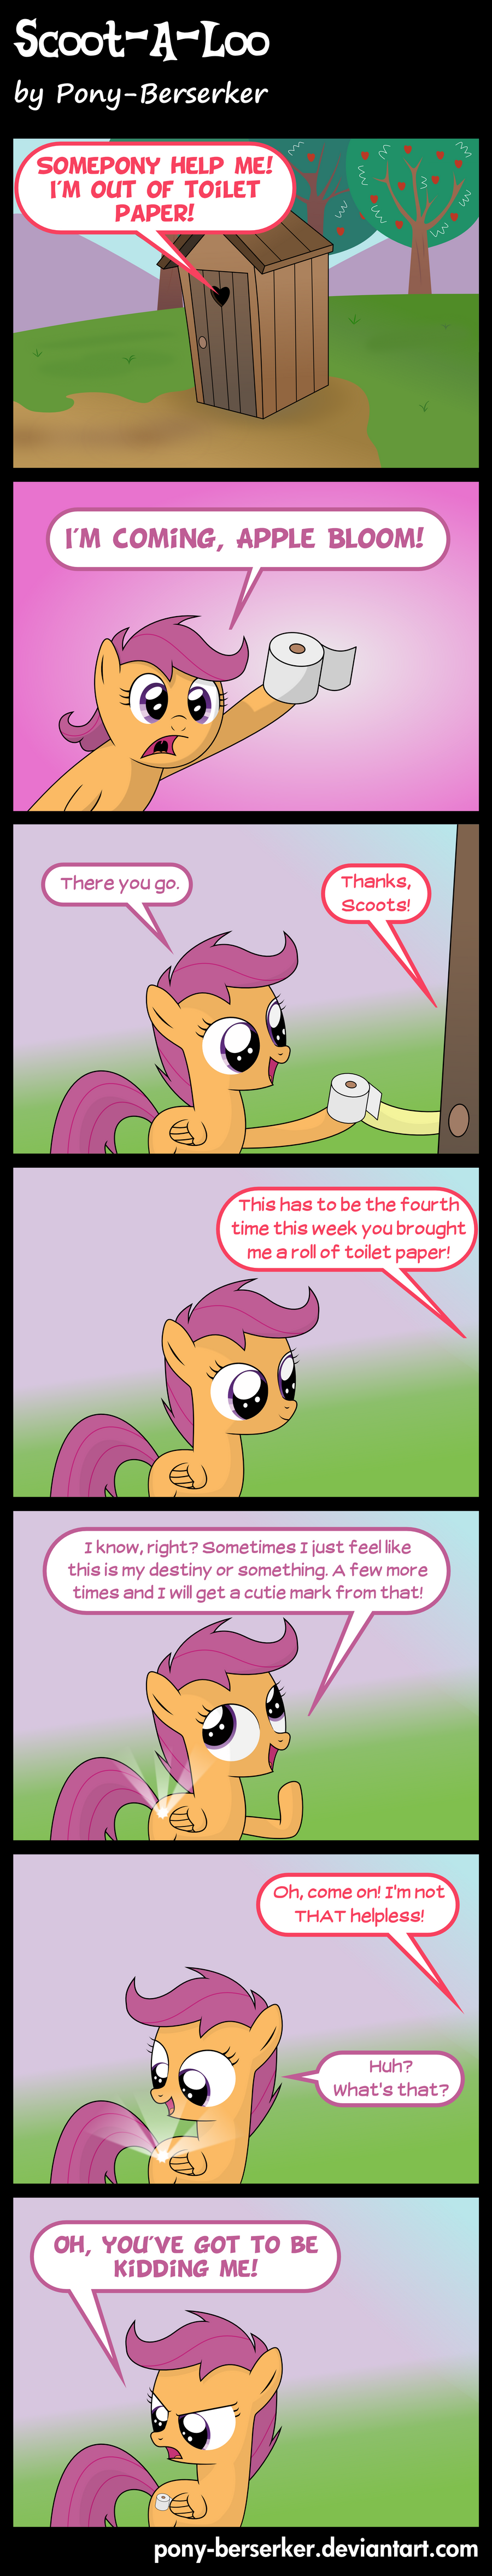 Scoot-A-Loo by Pony-Berserker